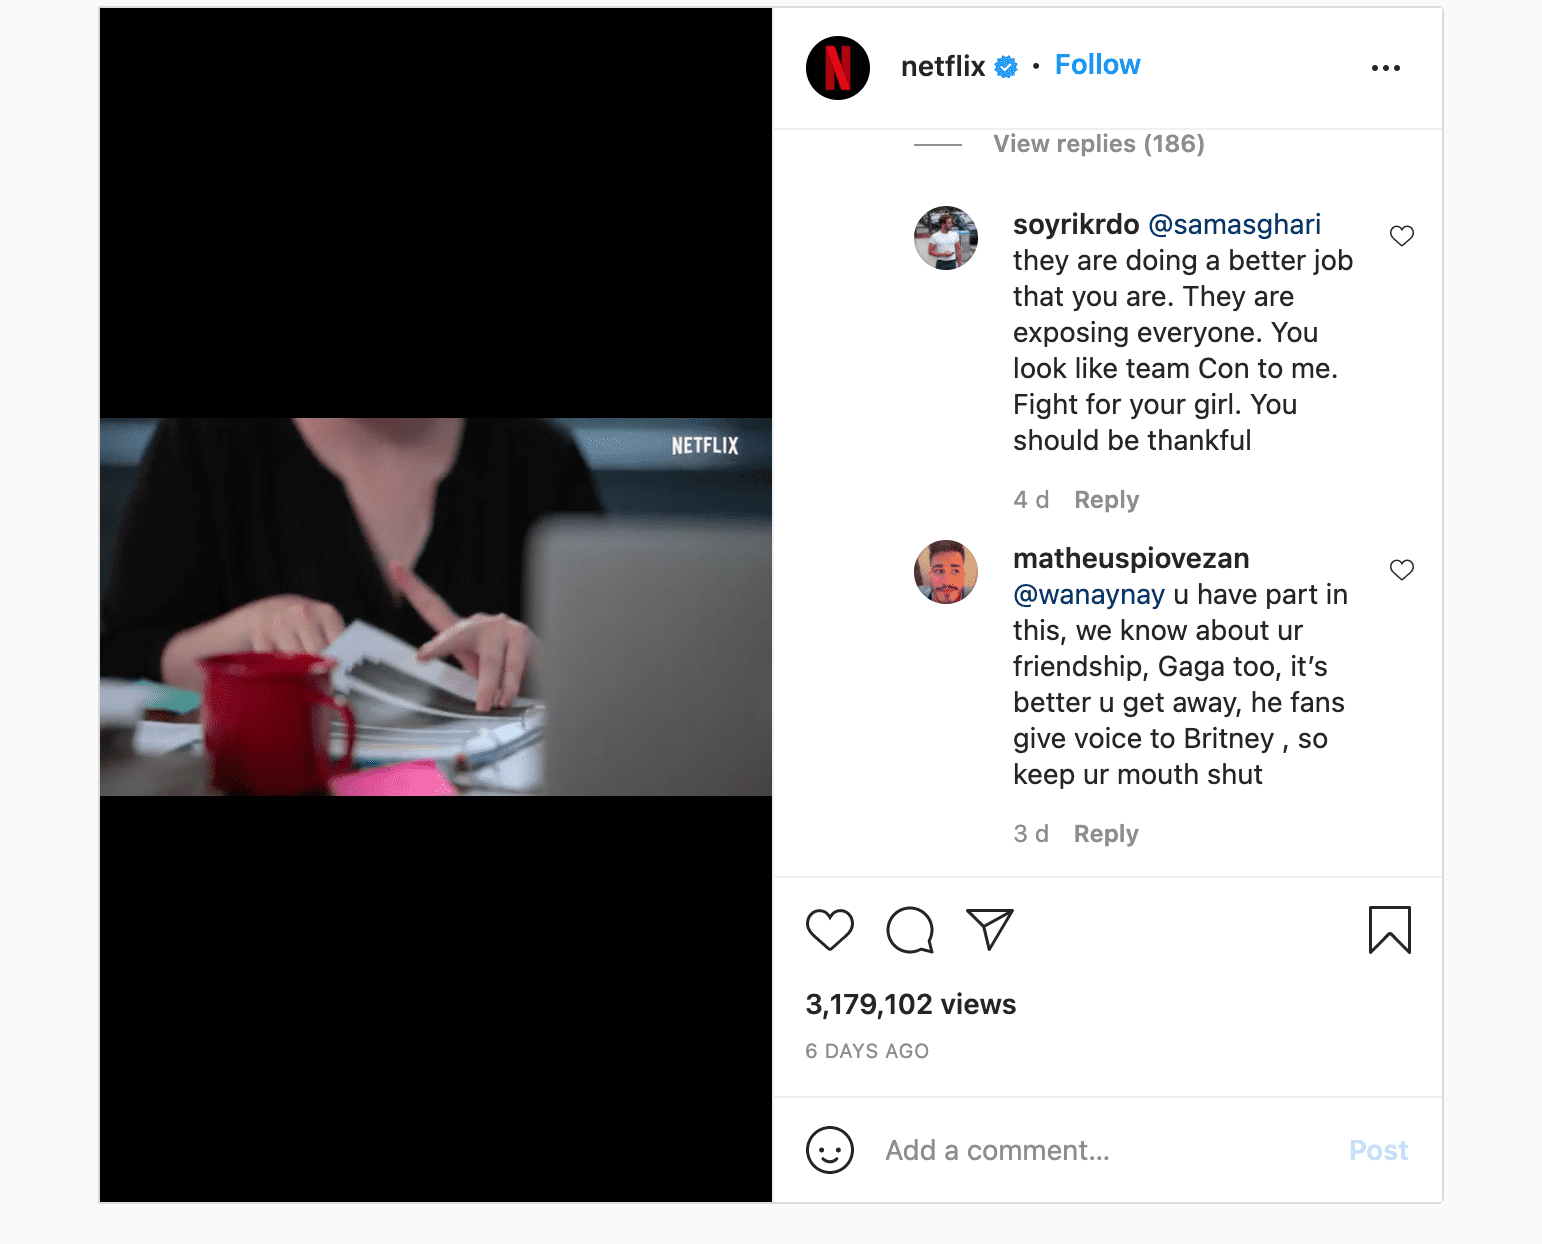 Comments made in response to Sam Asghari's now-deleted comment on the Netflix documentary announcement post on Instagram   Photo: Instagram @netflix